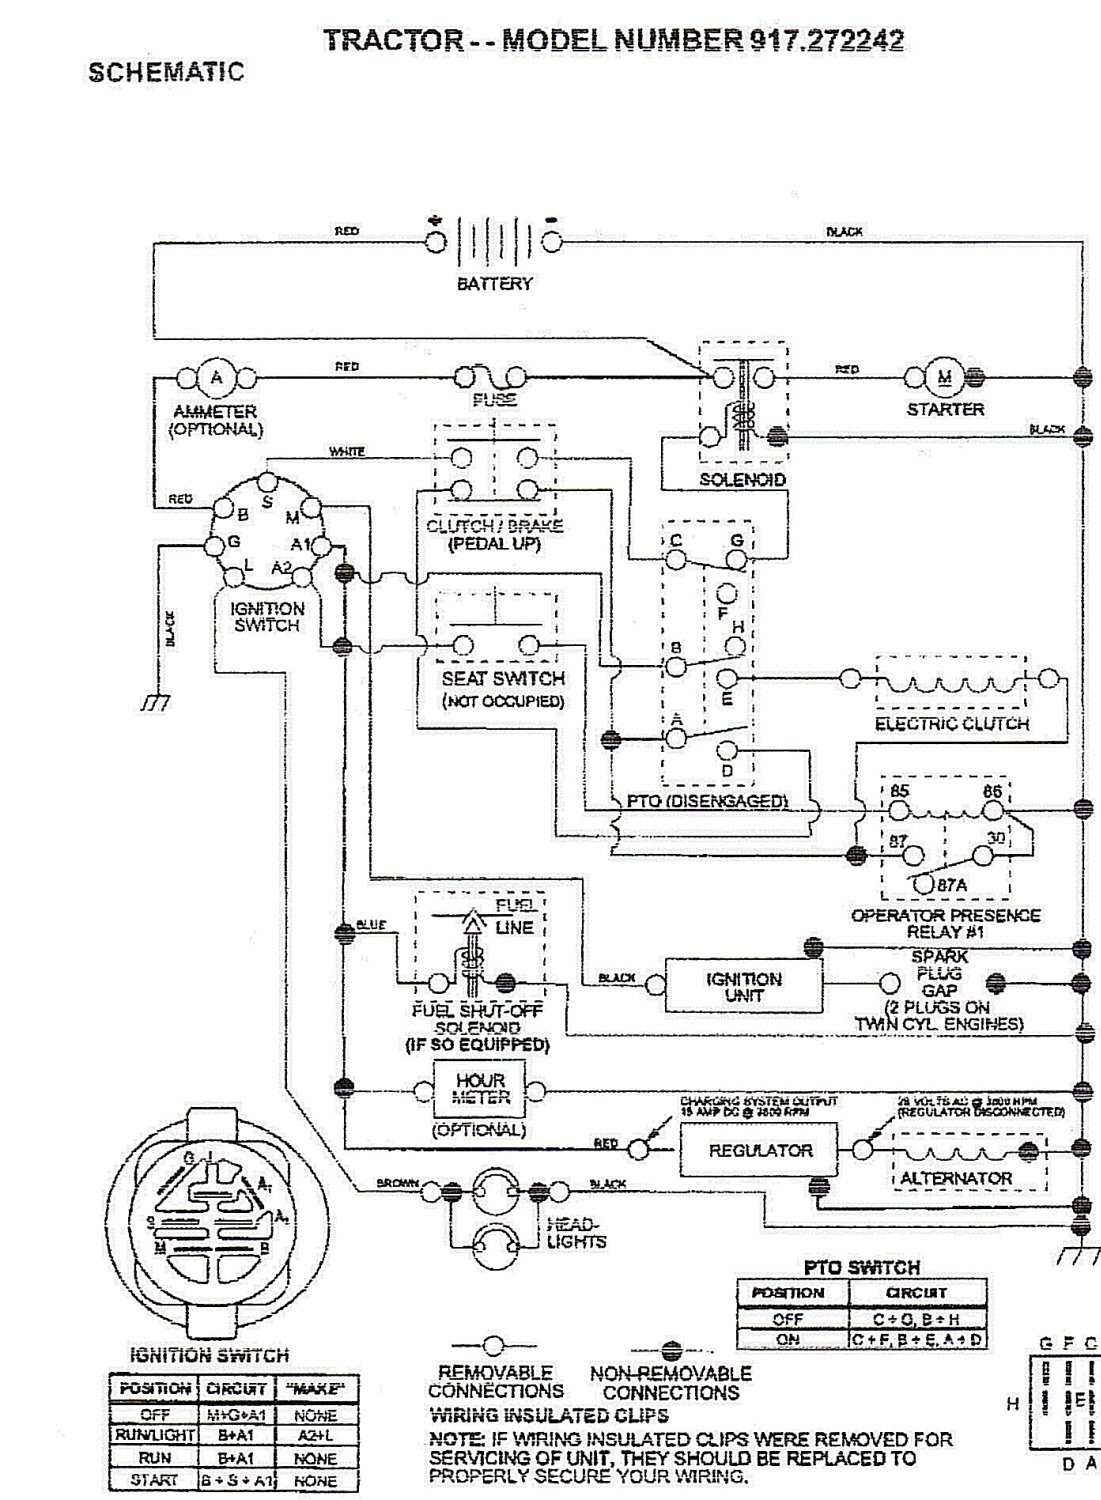 17 Hp Briggs Amp Stratton Wiring Diagram | Wiring Diagram - Briggs And Stratton Alternator Wiring Diagram